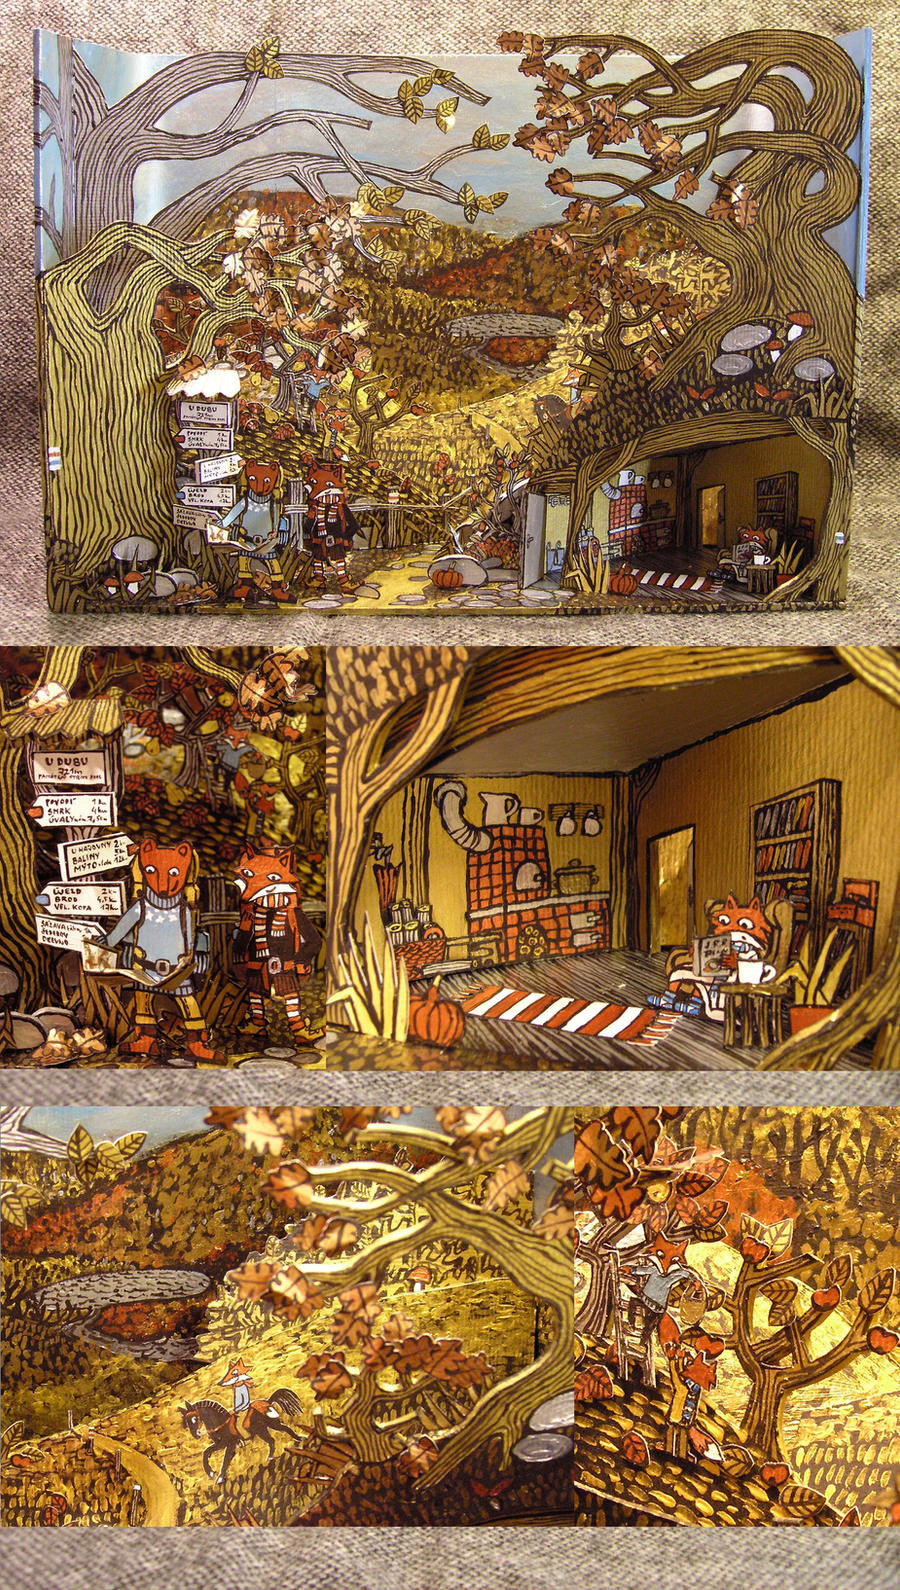 Merrell Diorama Contest My Golden Autumn by Hellanim